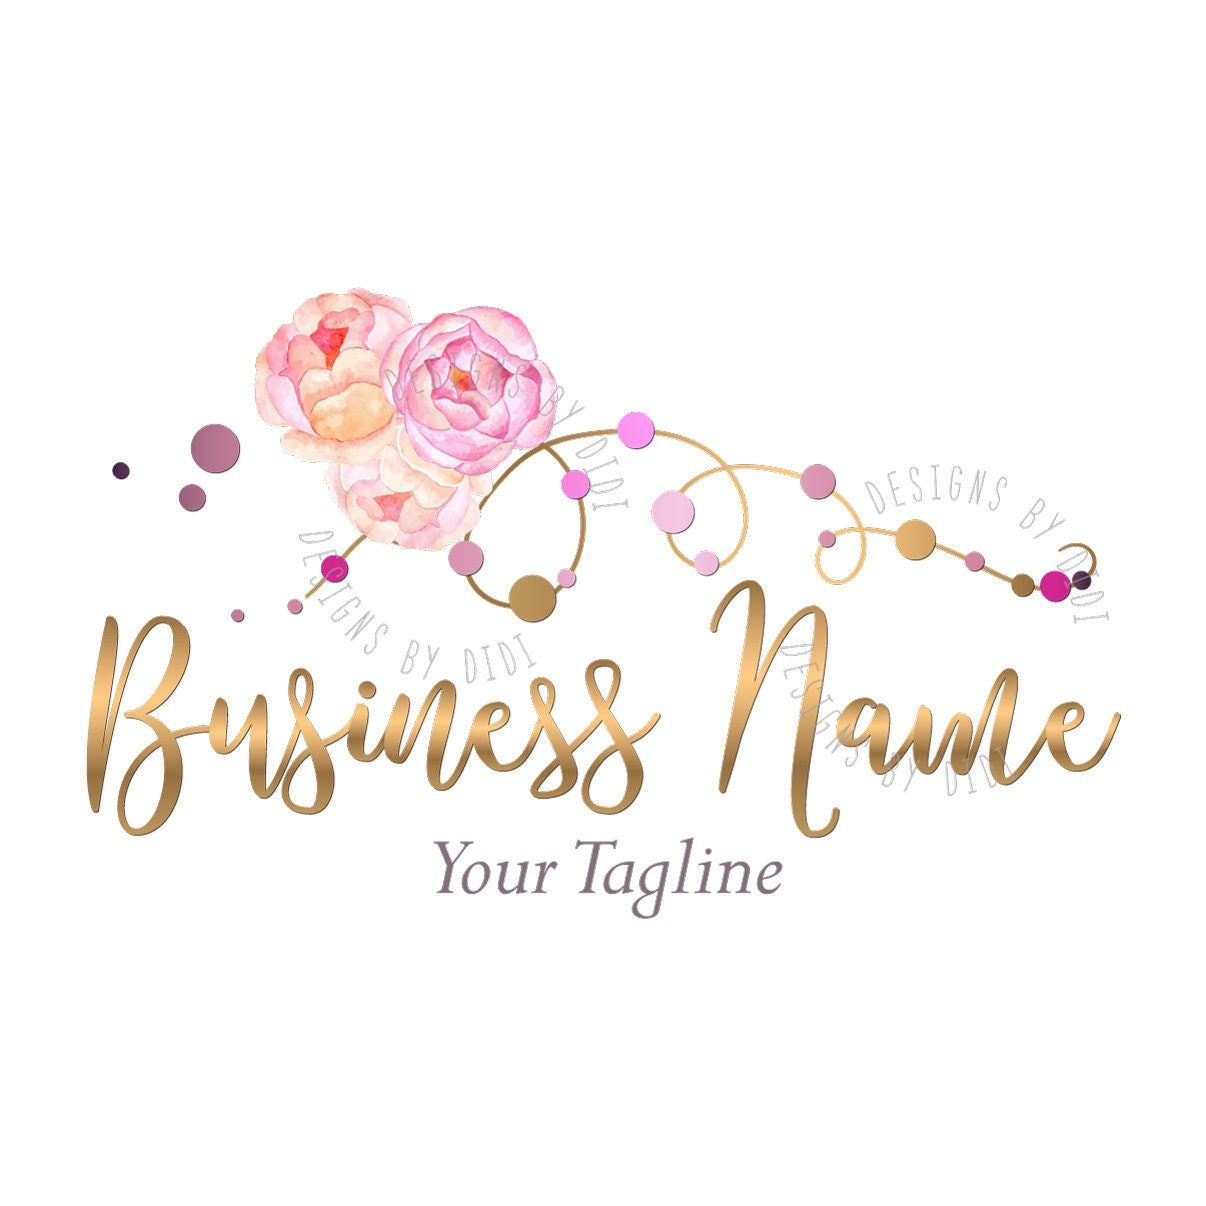 Beads Company Logo: Custom Logo Design Jewelry Flowers Logo Jewelry Beads Logo